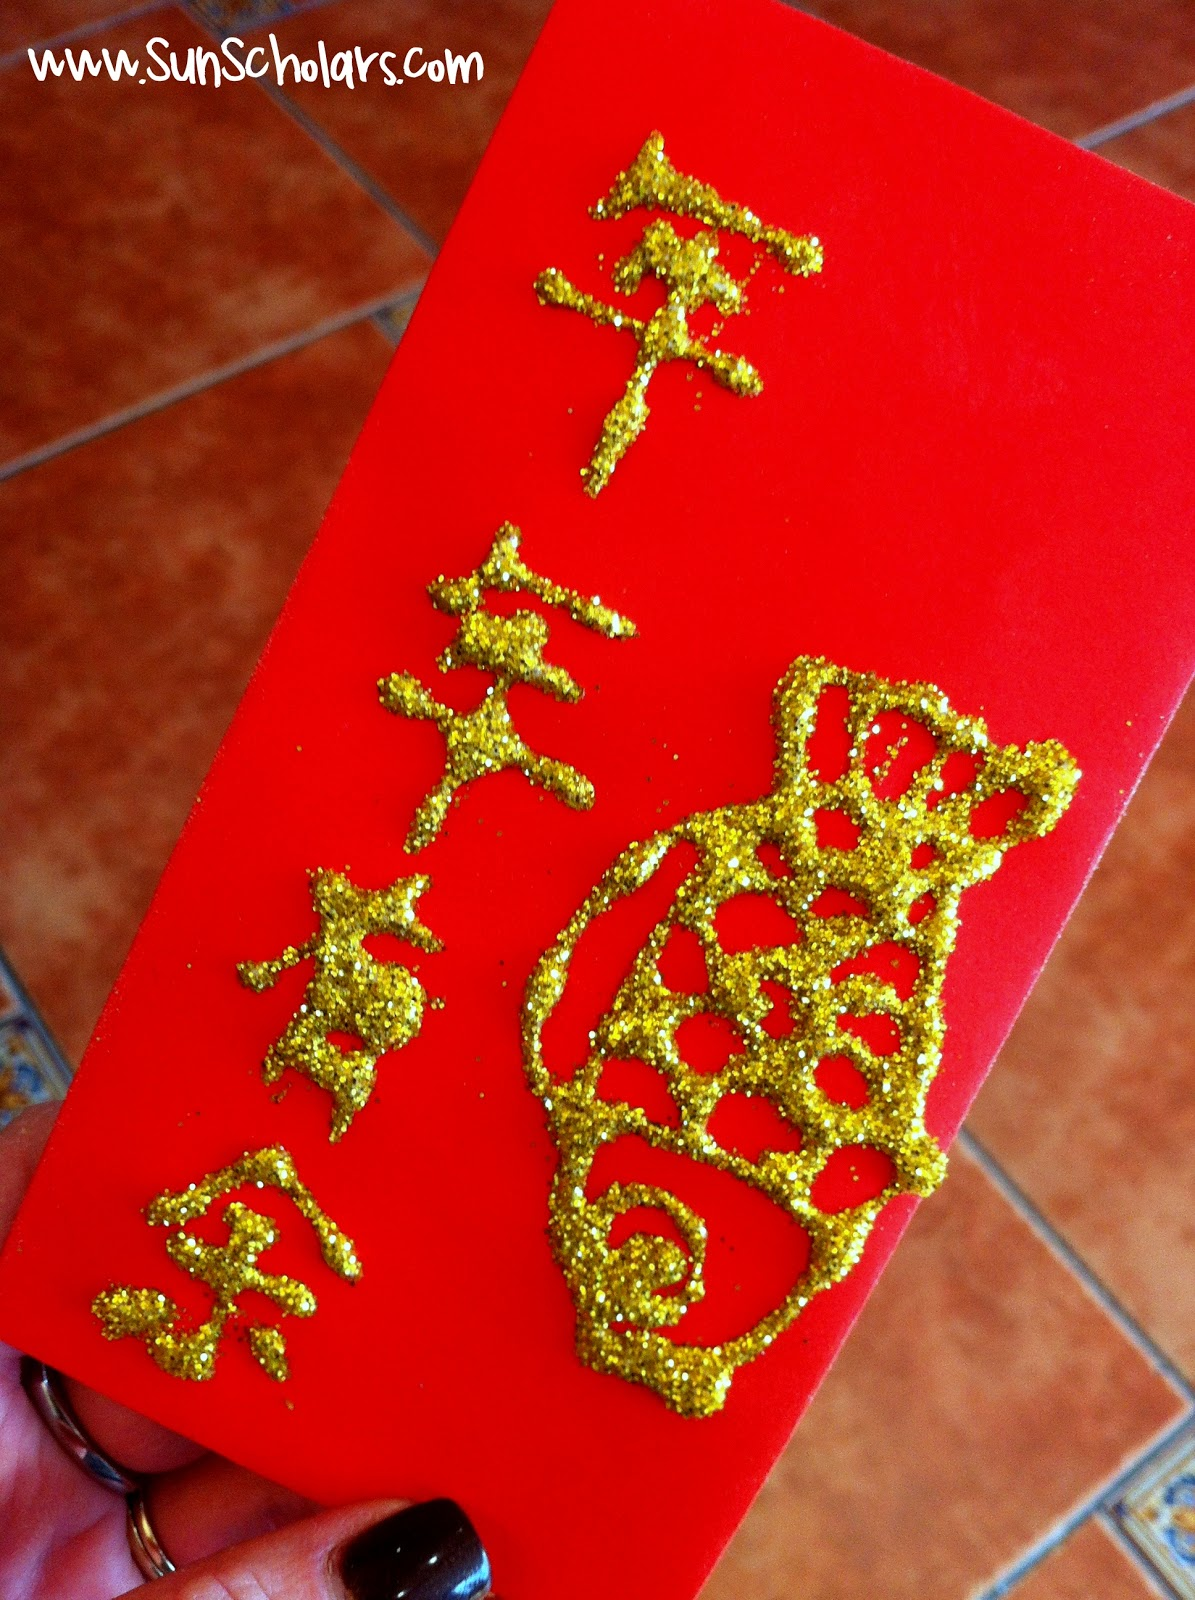 New Year's Eve Traditions - Red Envelopes (China) - Red ...